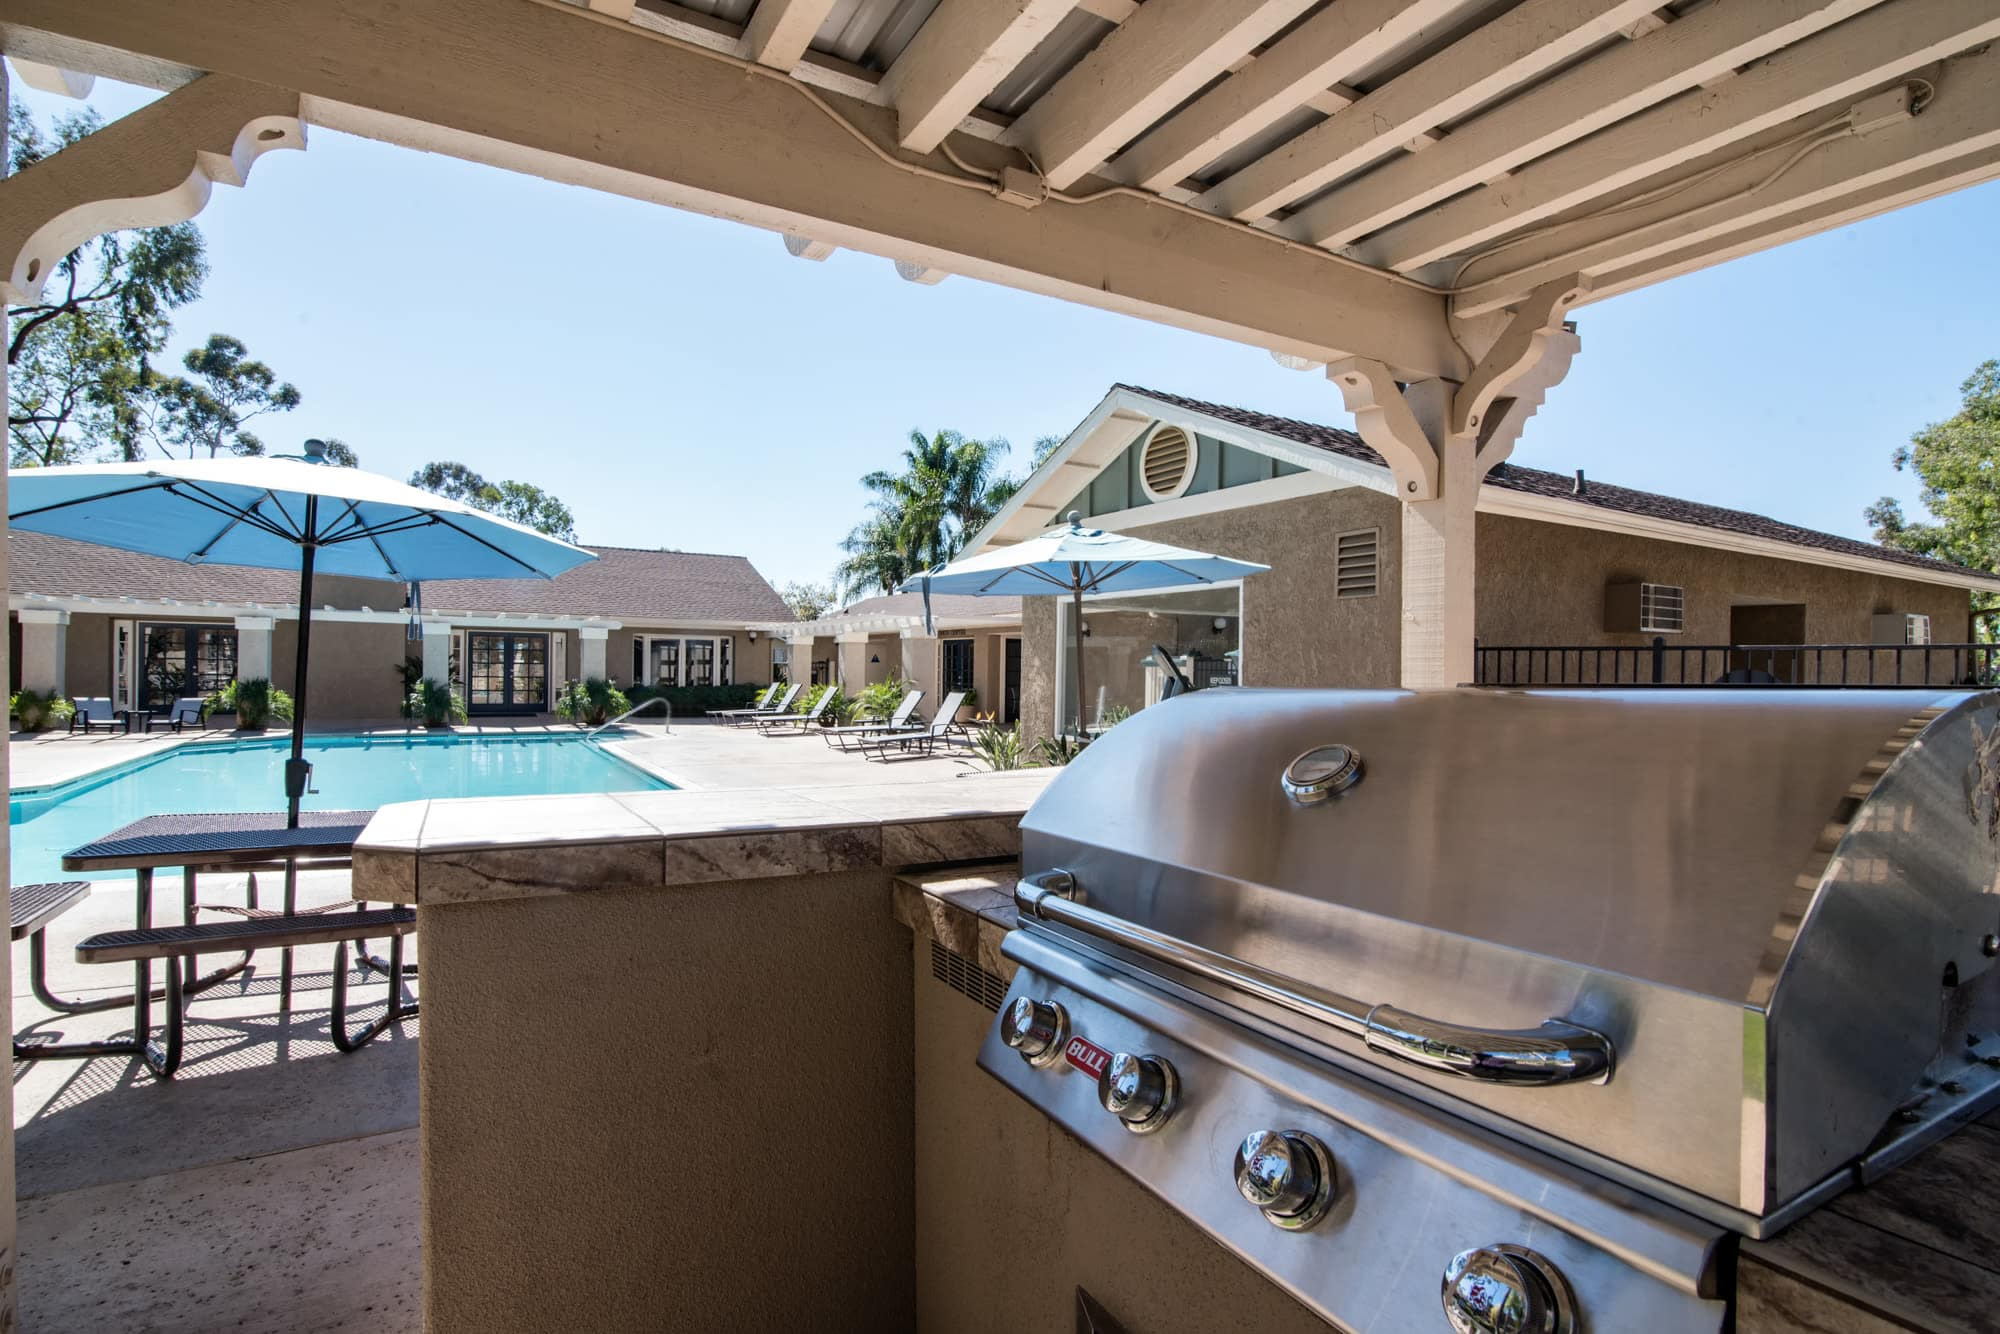 covered poolside BBQ Grill station at Lakeview Village Apartments